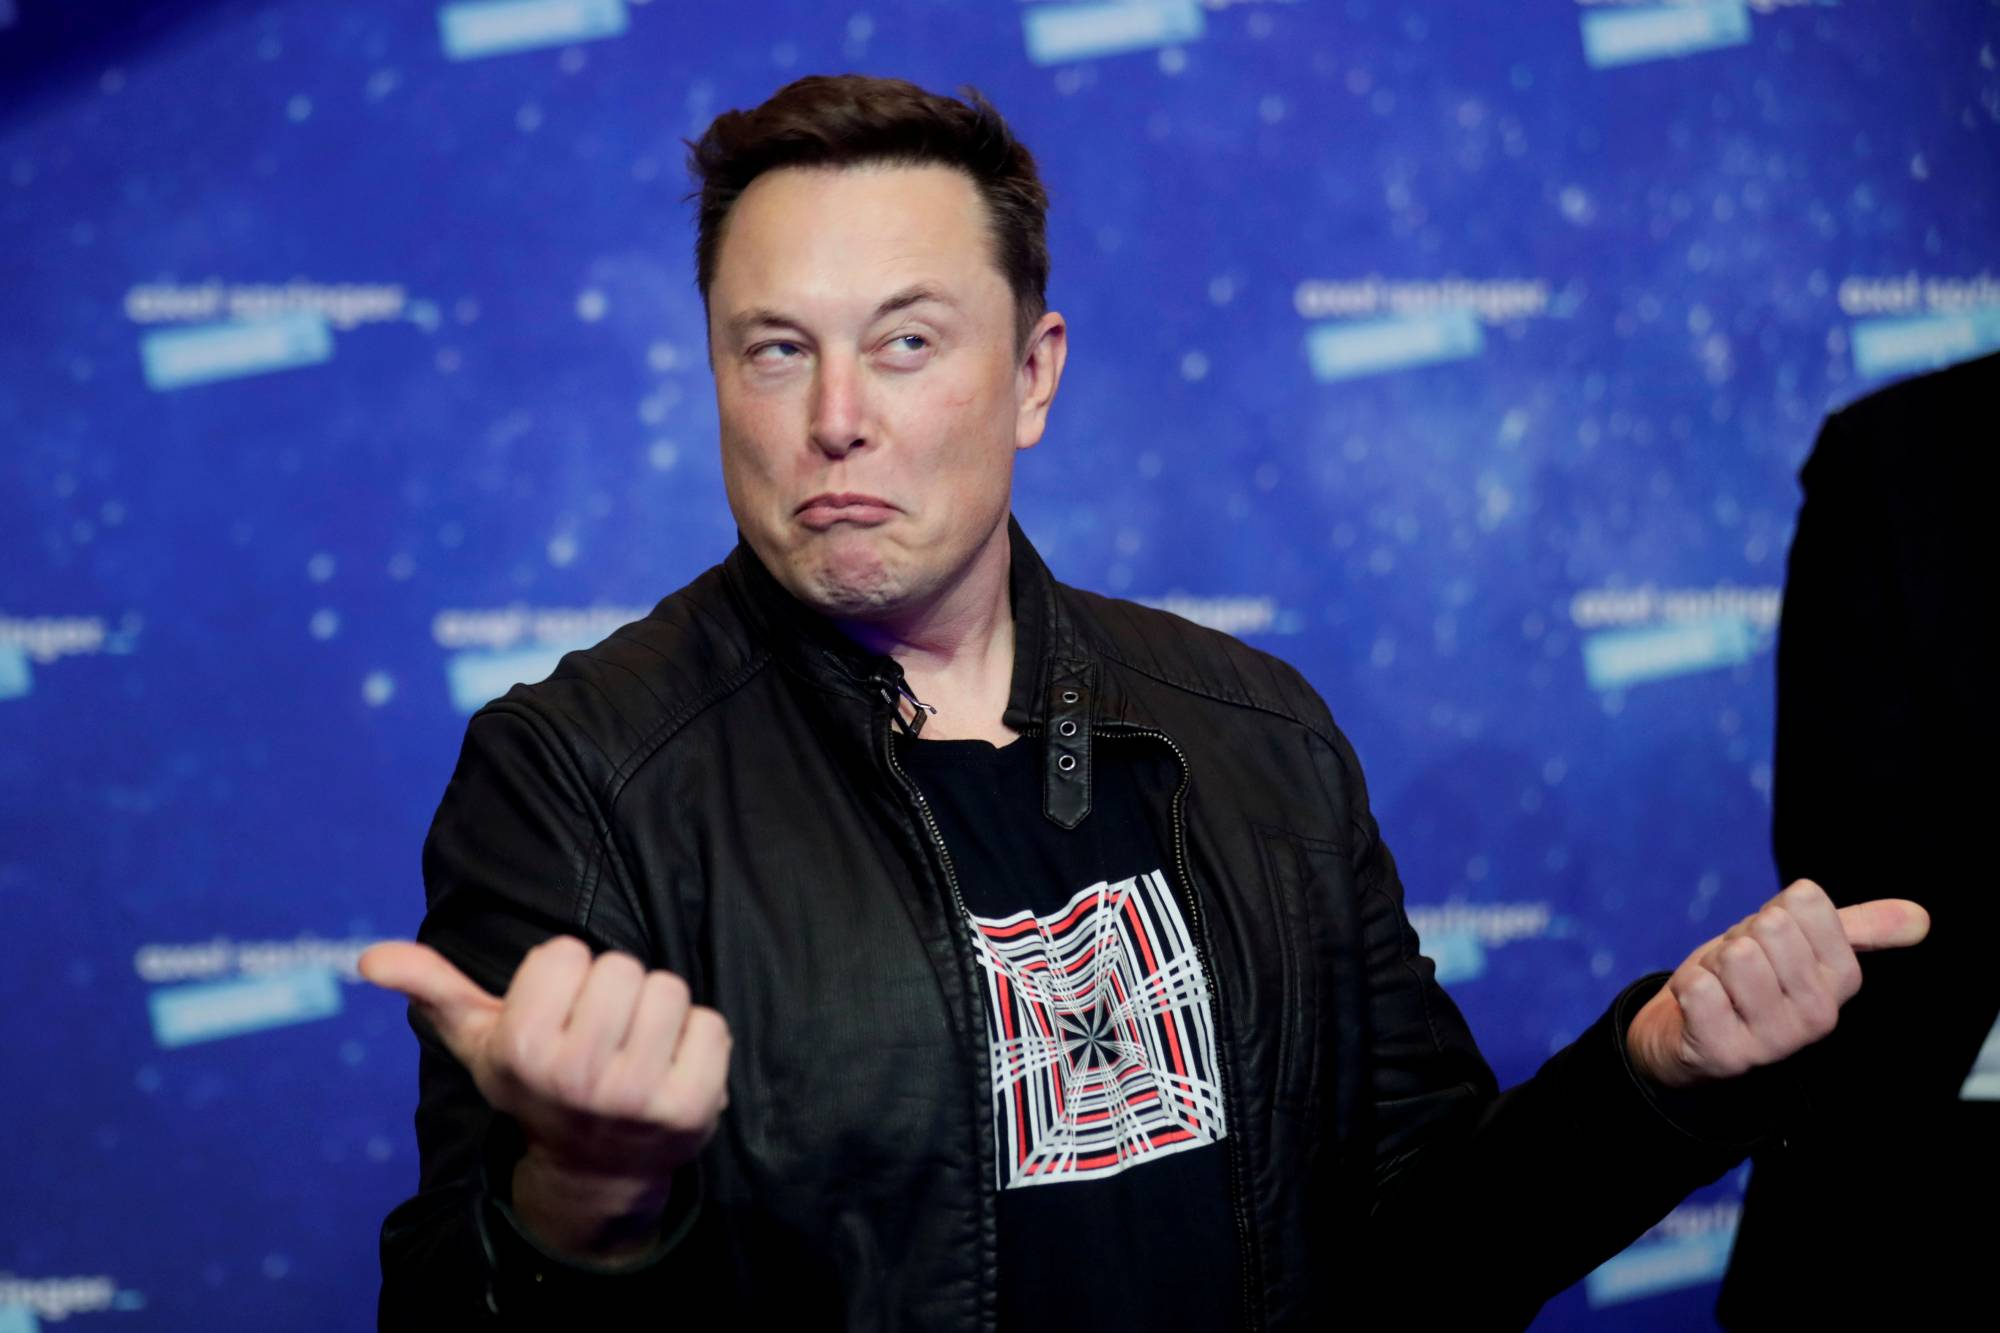 Clubhouse, where Tesla CEO Elon Musk has made appearances, is a year-old social media service consisting of virtual 'rooms' where people can talk to each other. | POOL / VIA REUTERS